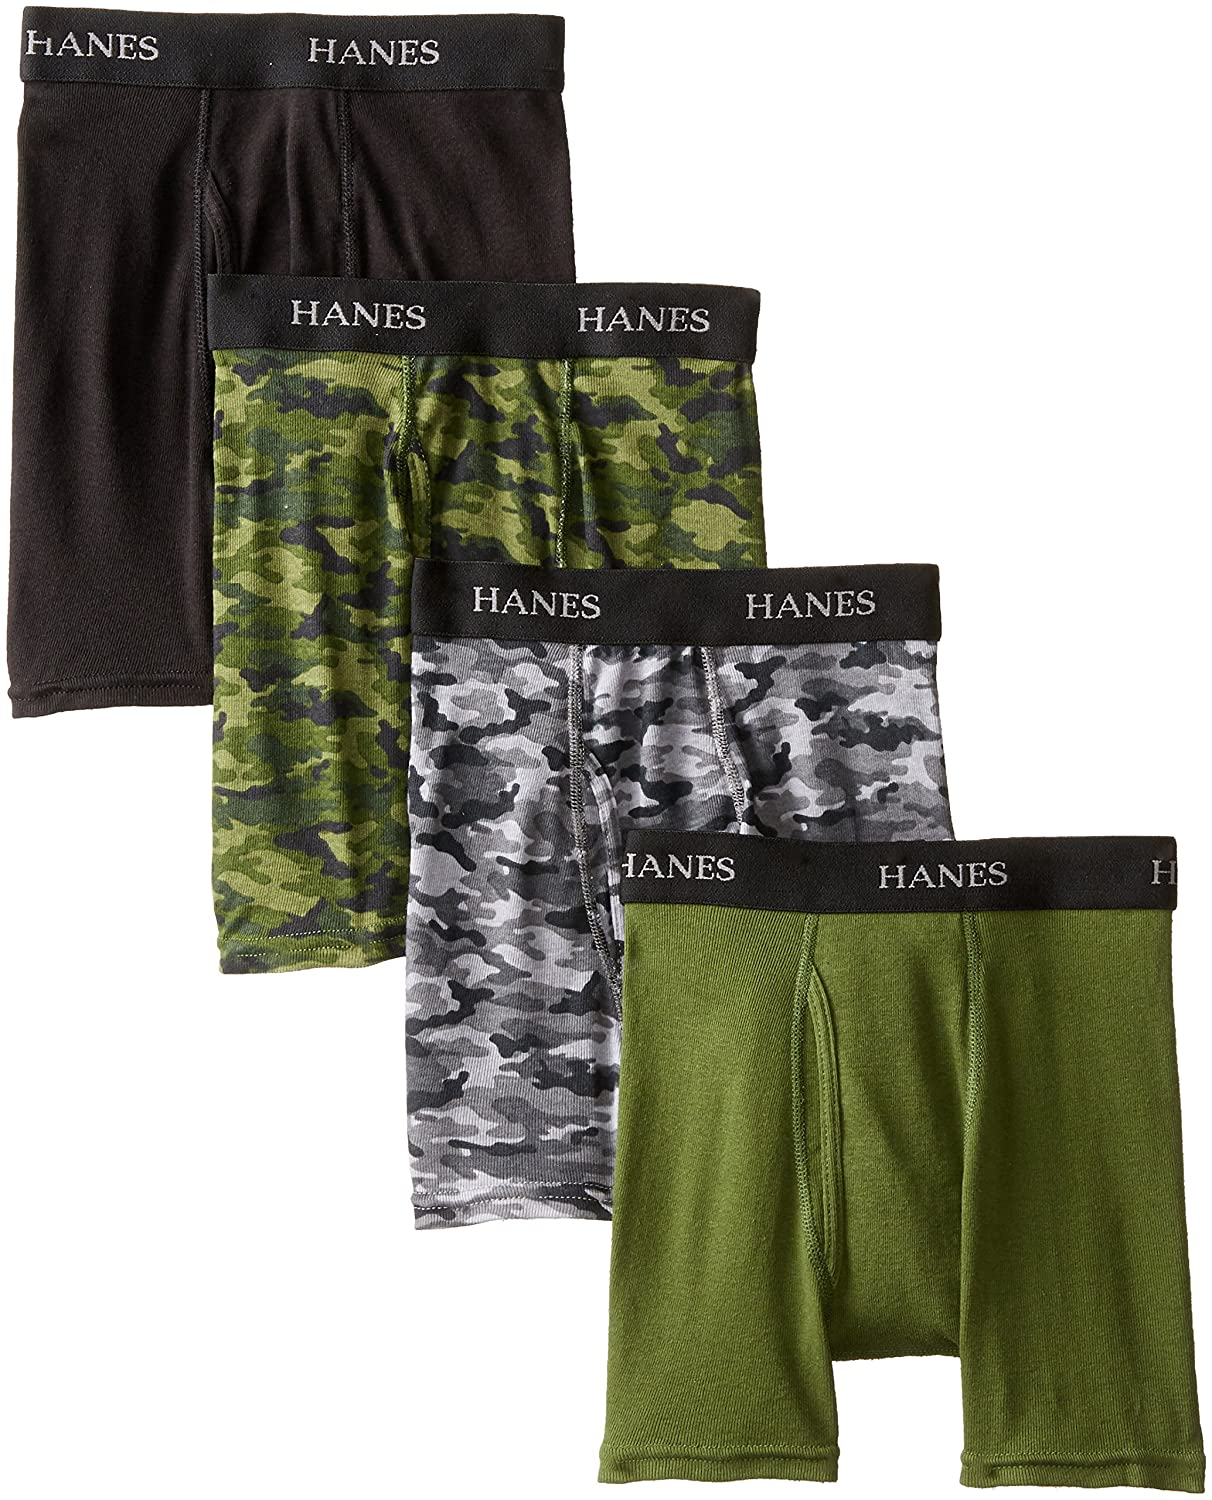 Hanes boys Big Boys 4 Pack Ultimate Comfort-flex Printed Boxer Brief Hanes Boys 8-20 Underwear BU740C